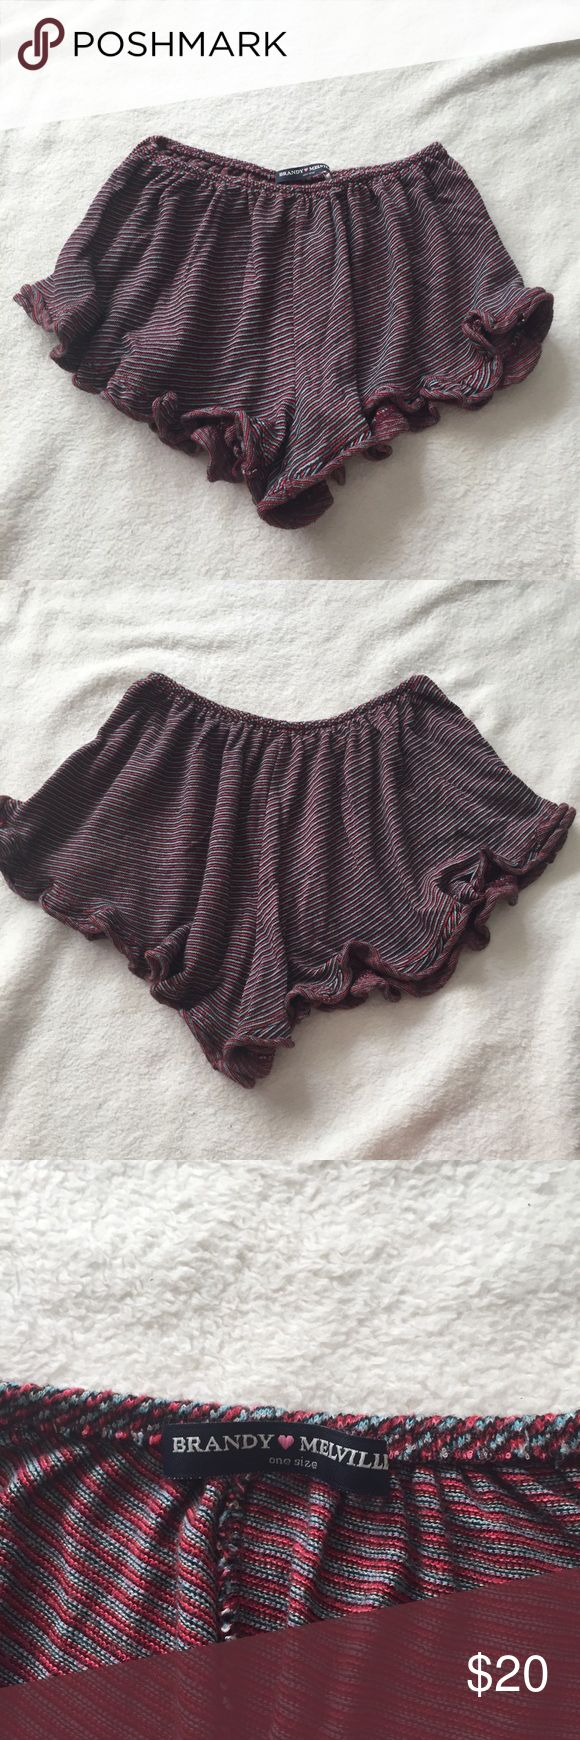 Brandy Melville Striped vodi shorts Maroon and grey striped vodi shorts from Brandy Melville. Perfect for everyday summer outfits! Very comfortable and in perfect condition. Only worn once when trying on. Brandy Melville Shorts